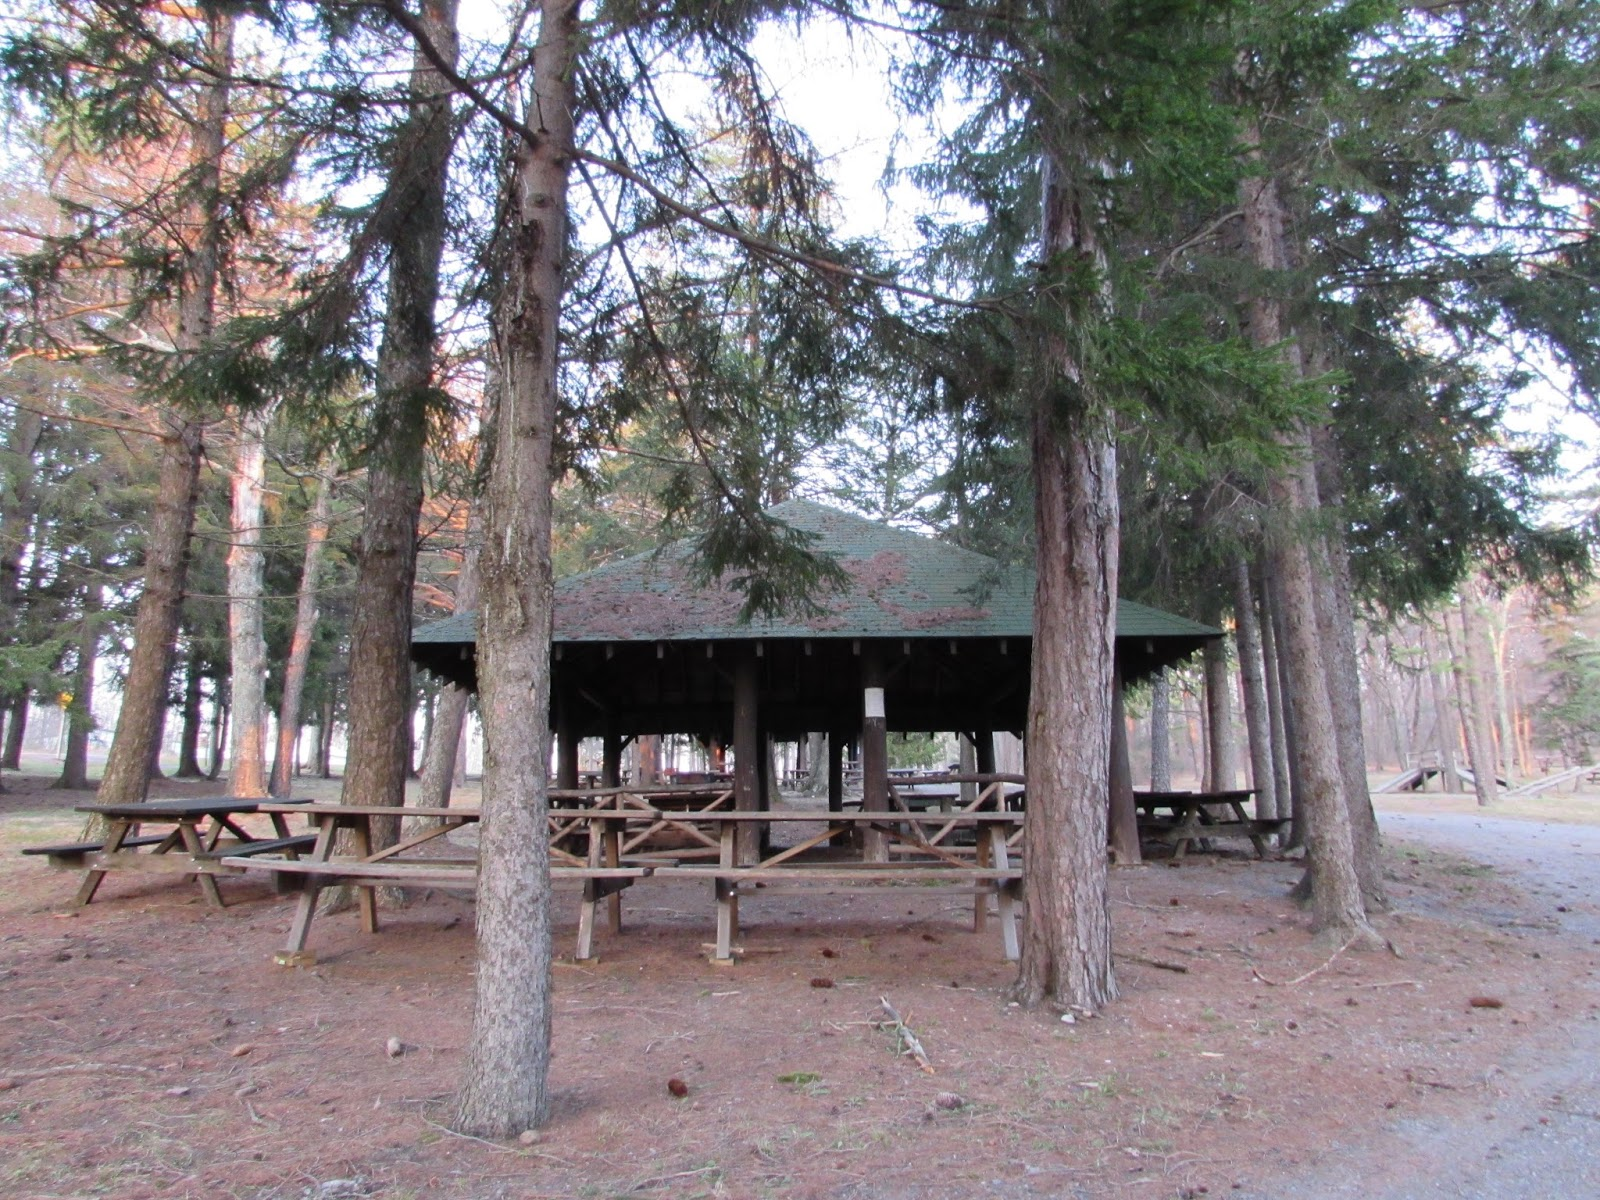 Buchanan State Forest, Ruffed Grouse, Old CCC Camp, & Scenic